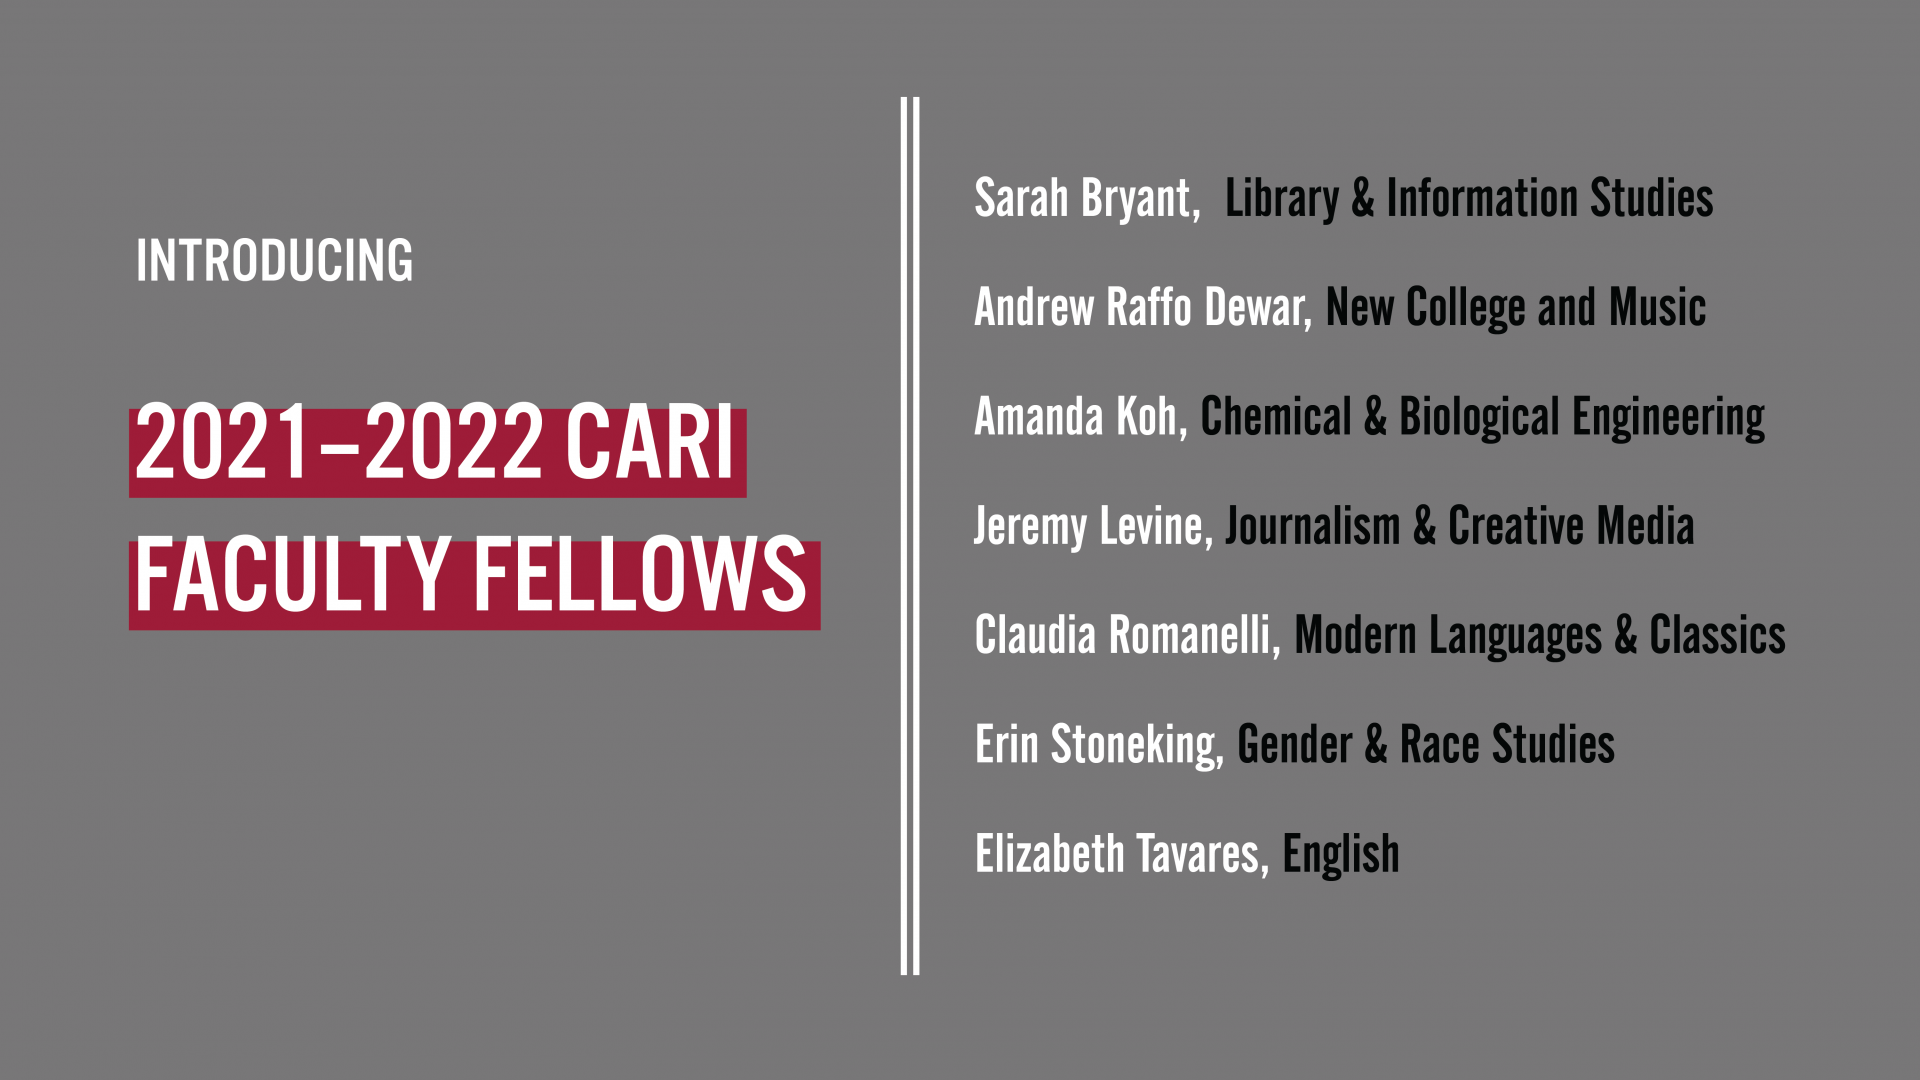 CARI Faculty Fellows